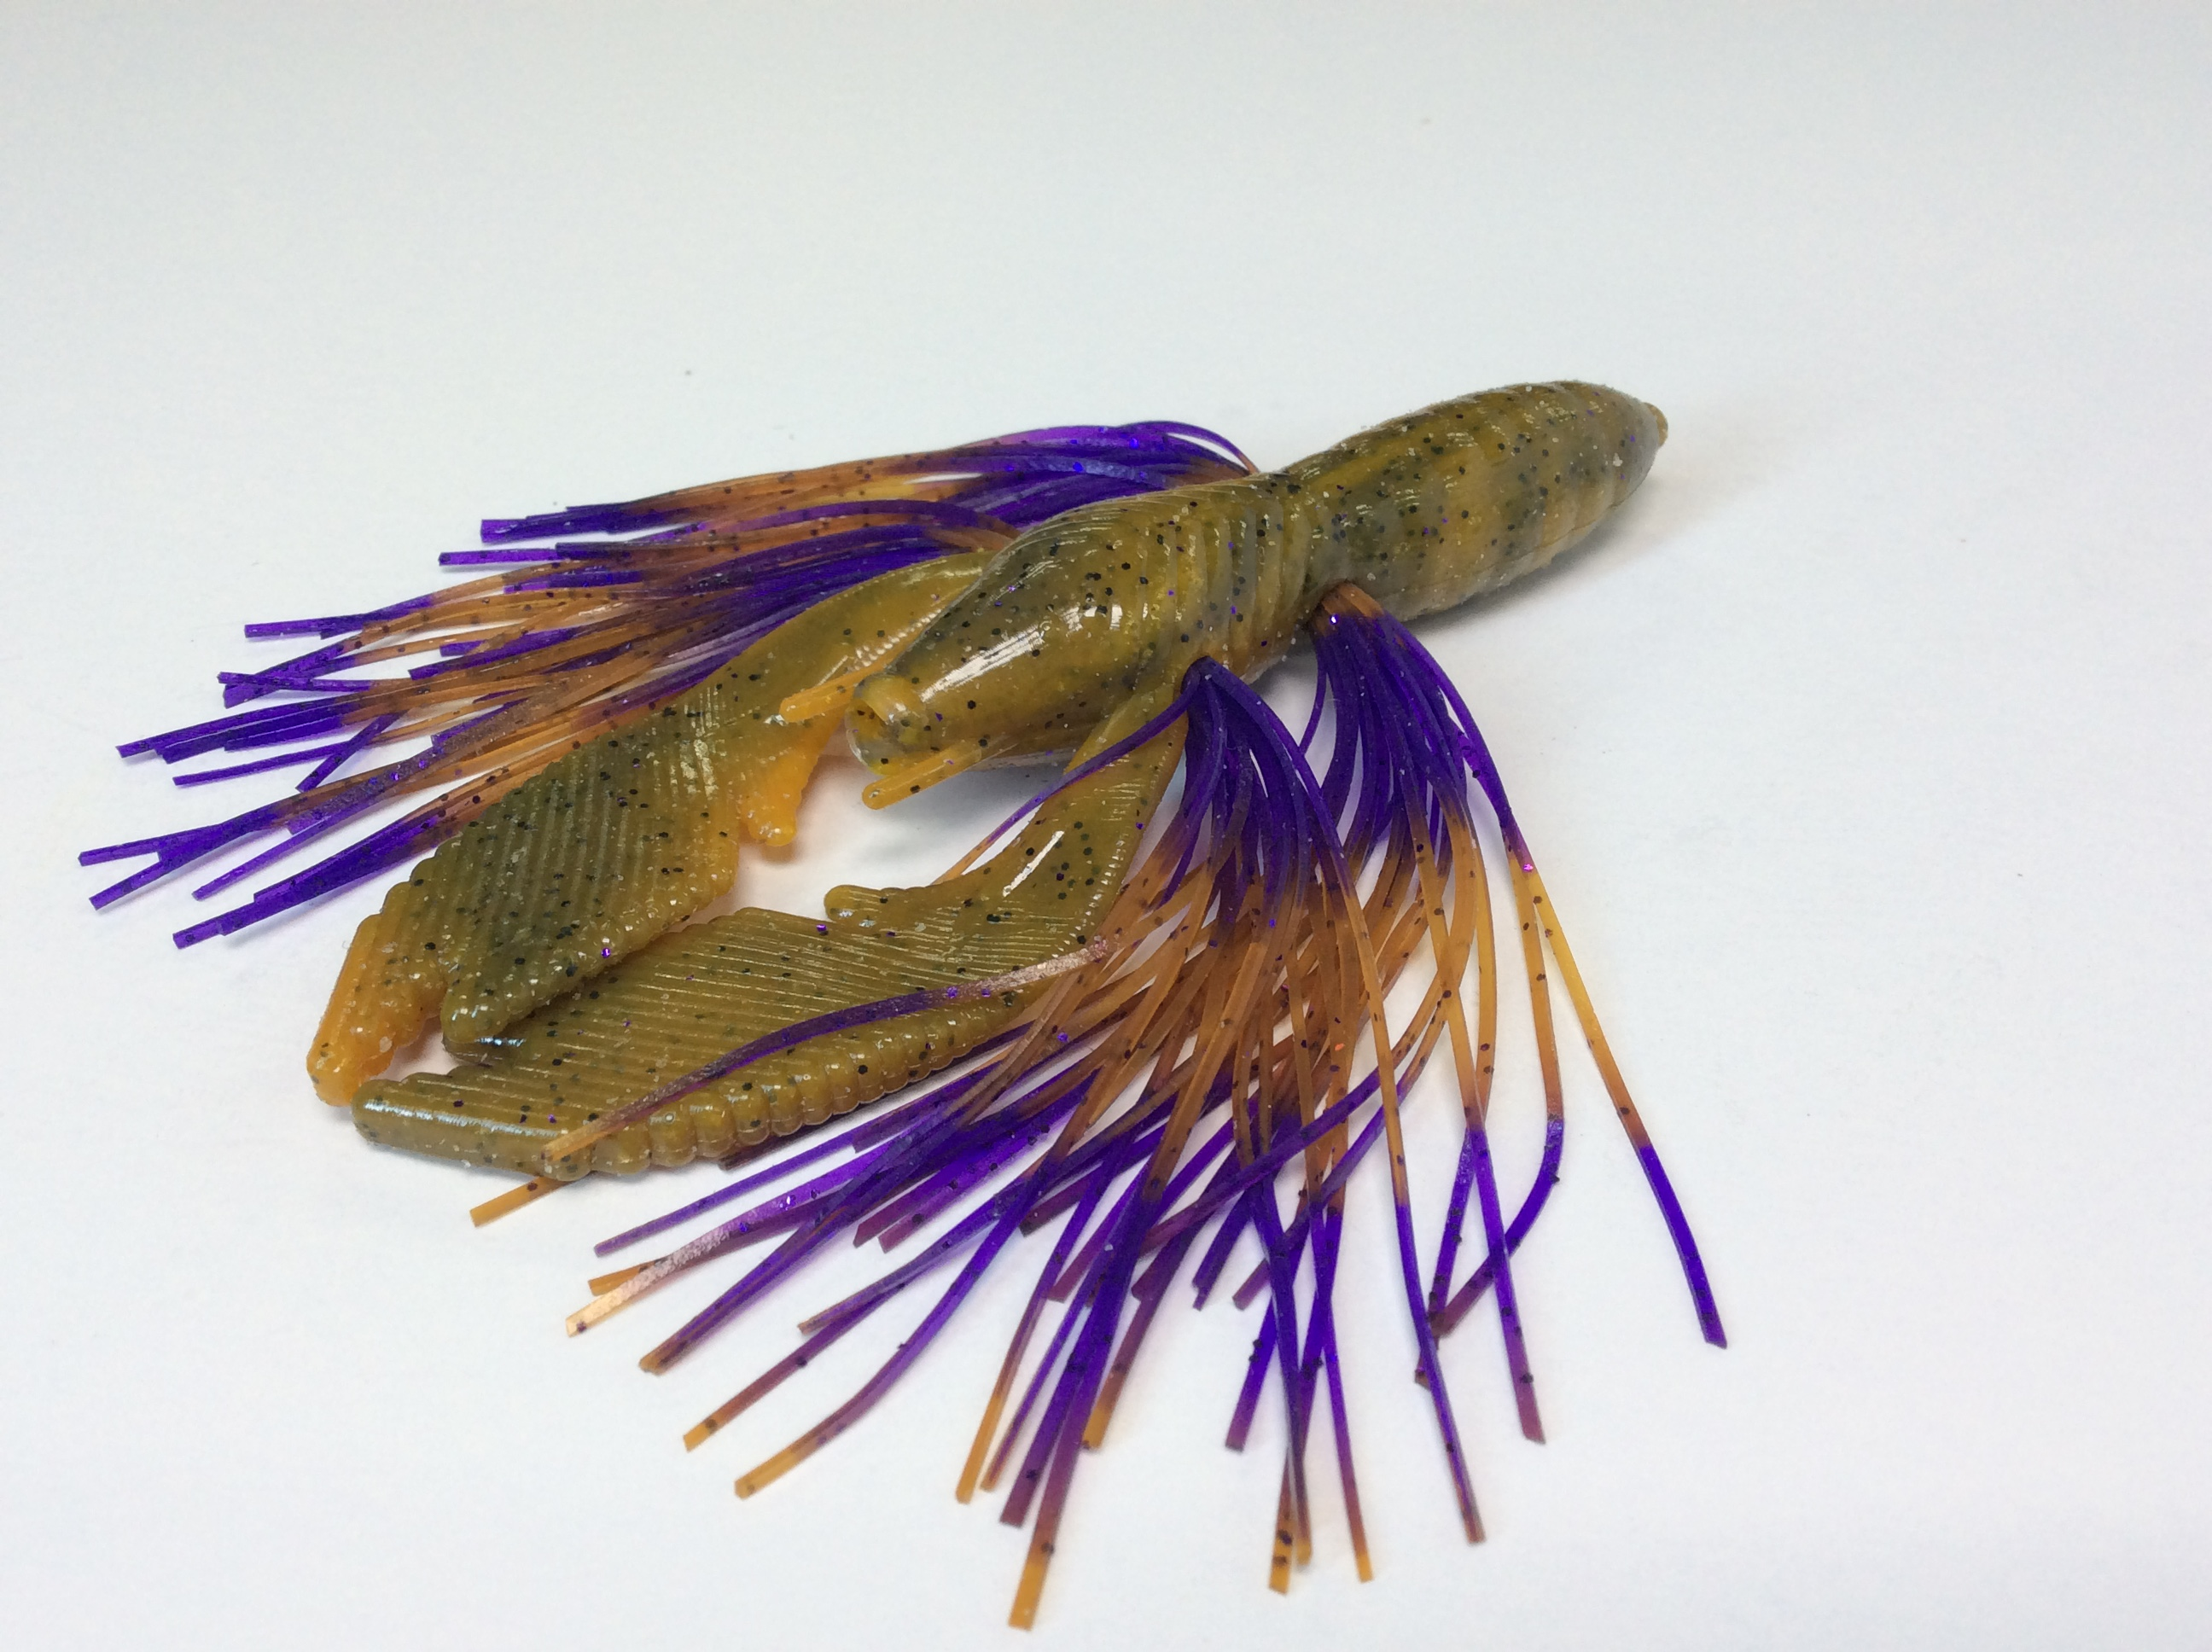 Craw with Craw Purple